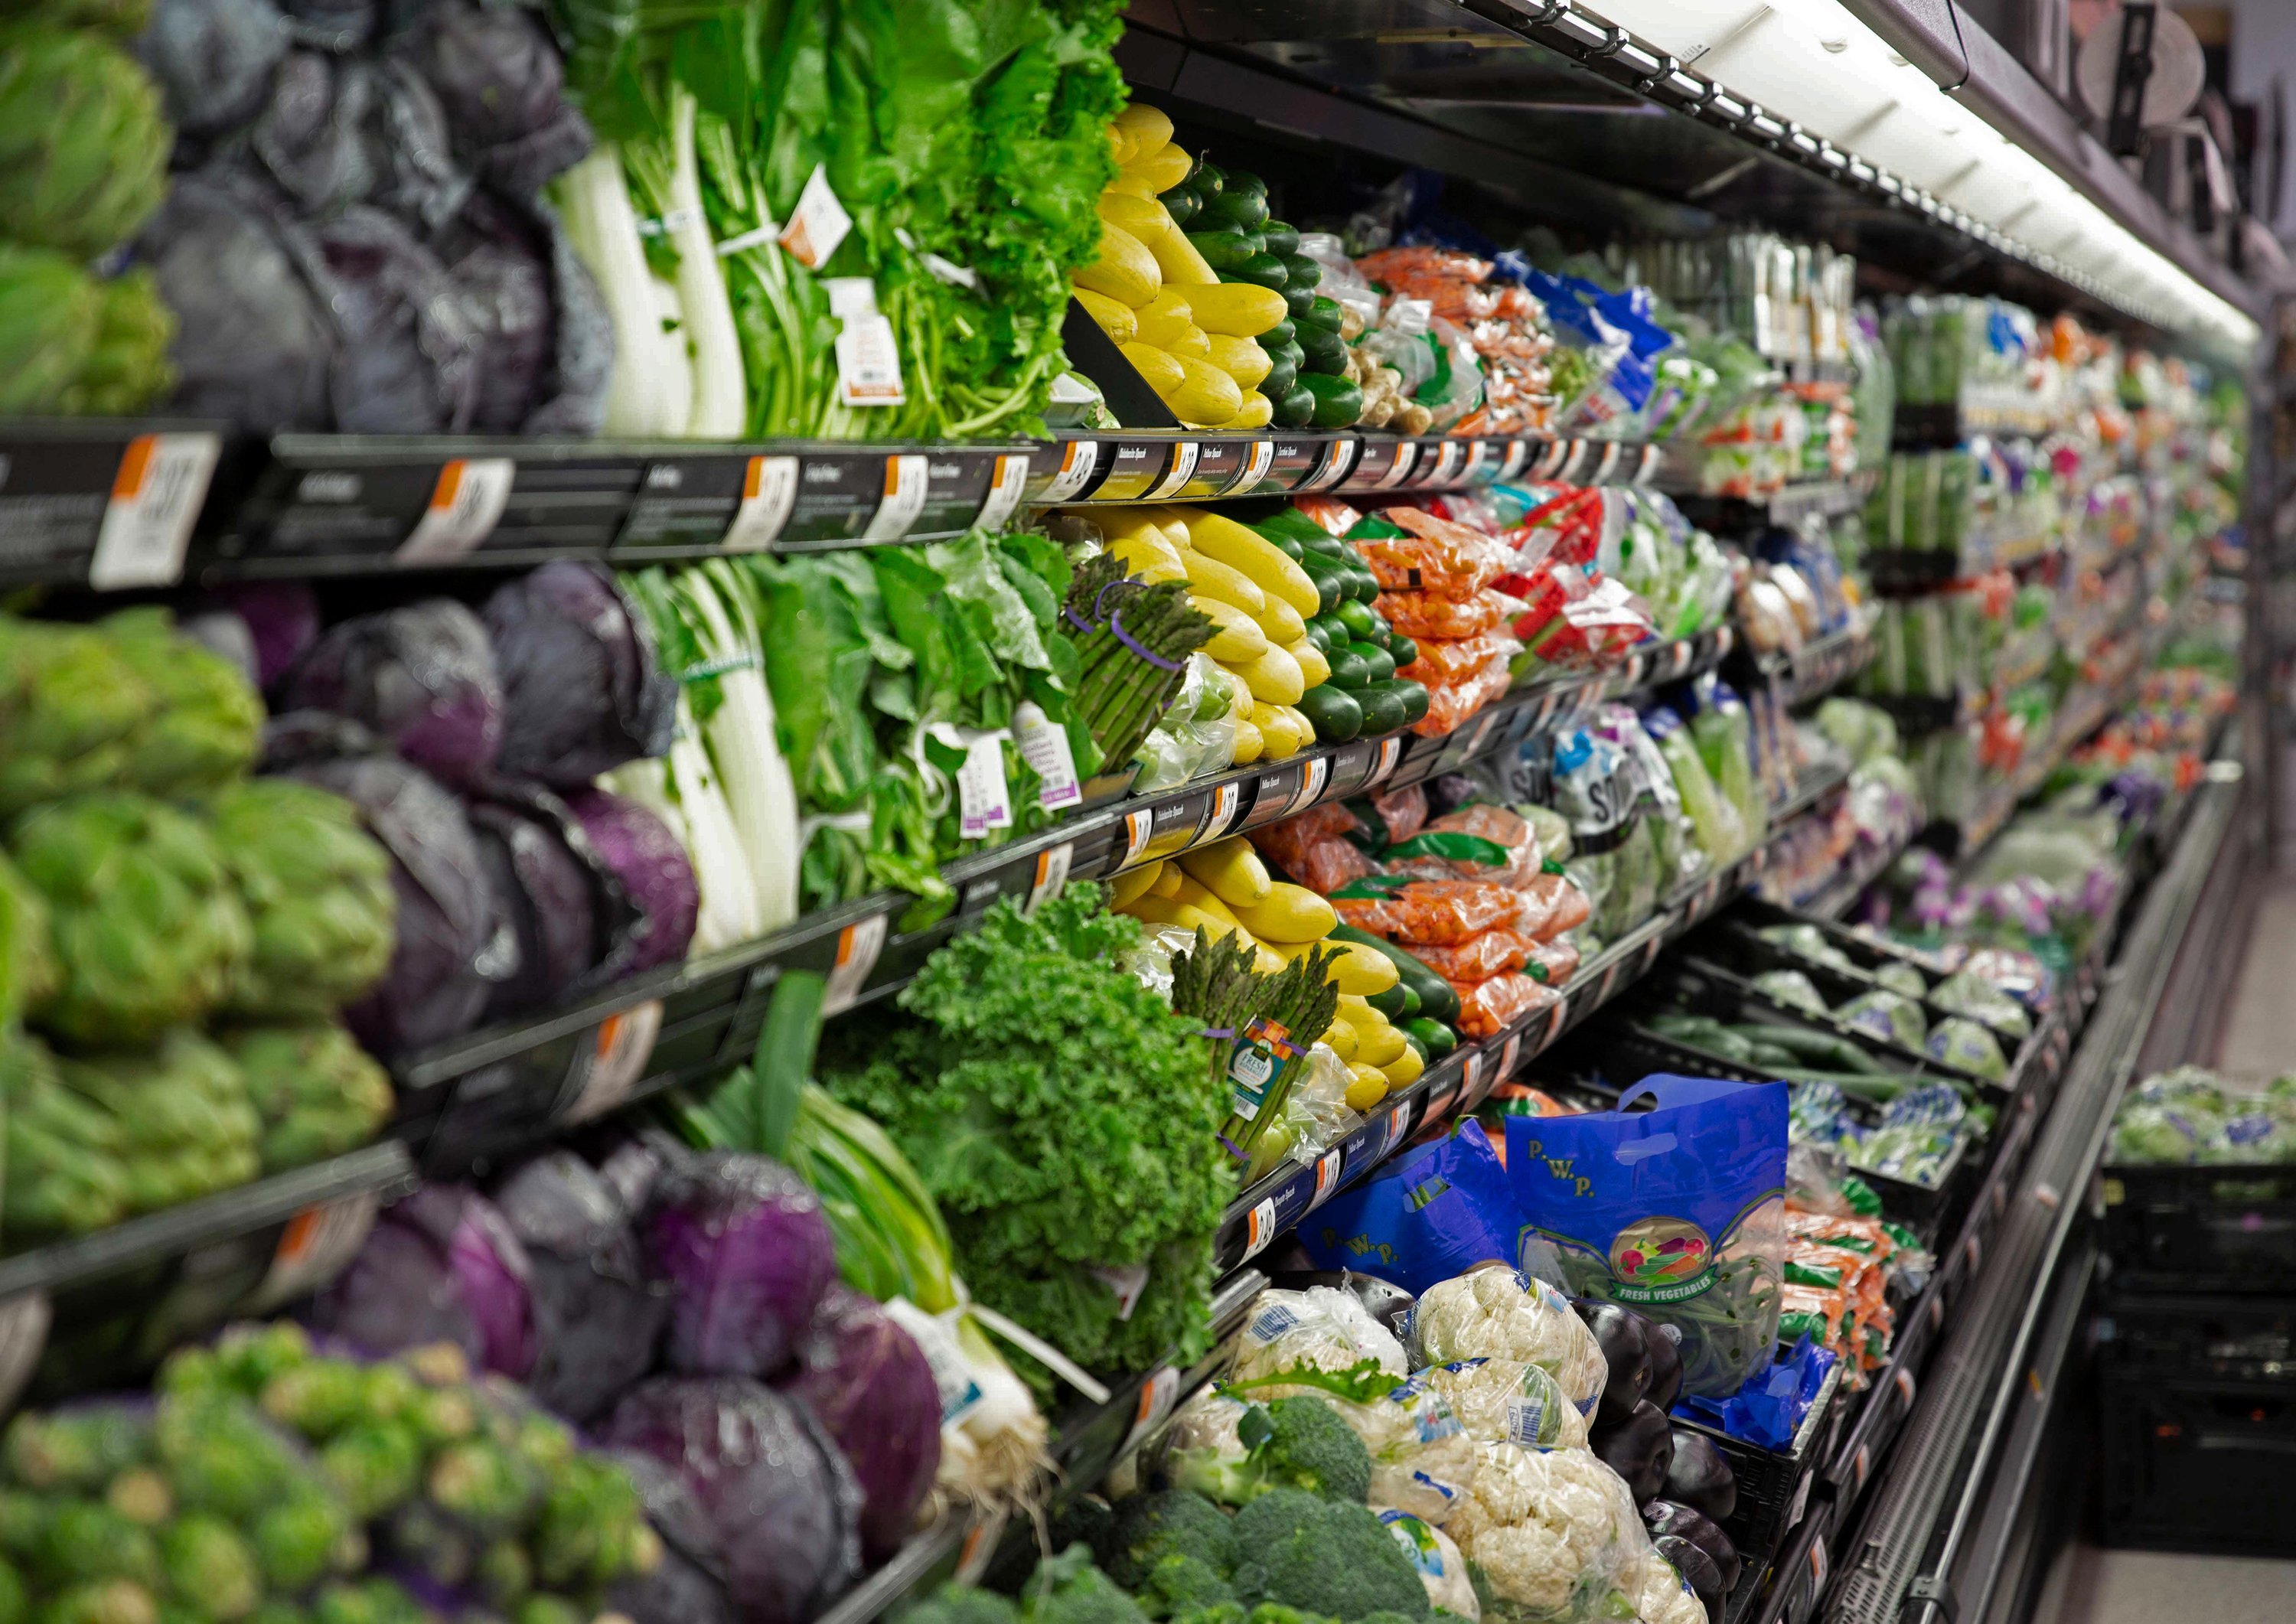 America's largest grocer is revamping its produce section